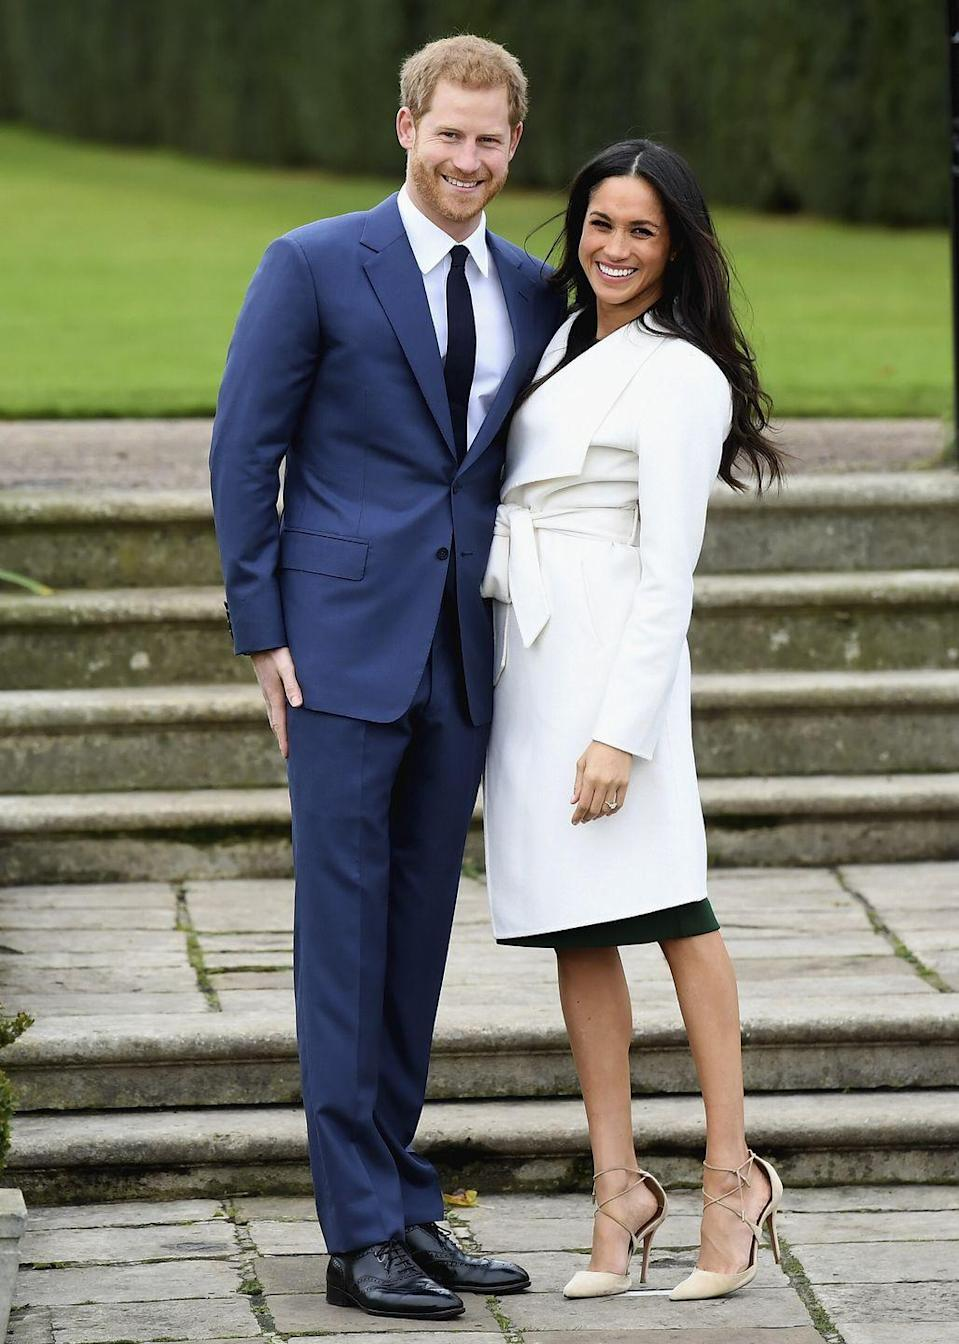 <p>It was a historic moment when Prince Harry announced his engagement to Meghan Markle in 2017. The former actress would be the first American, divorced, and bi-racial woman to marry into the British royal family. The shoes she wore for the announcement—nude Aquazzura Matilde pumps—soon became historic in their own right, due to their accessible pricing and modern design.</p>